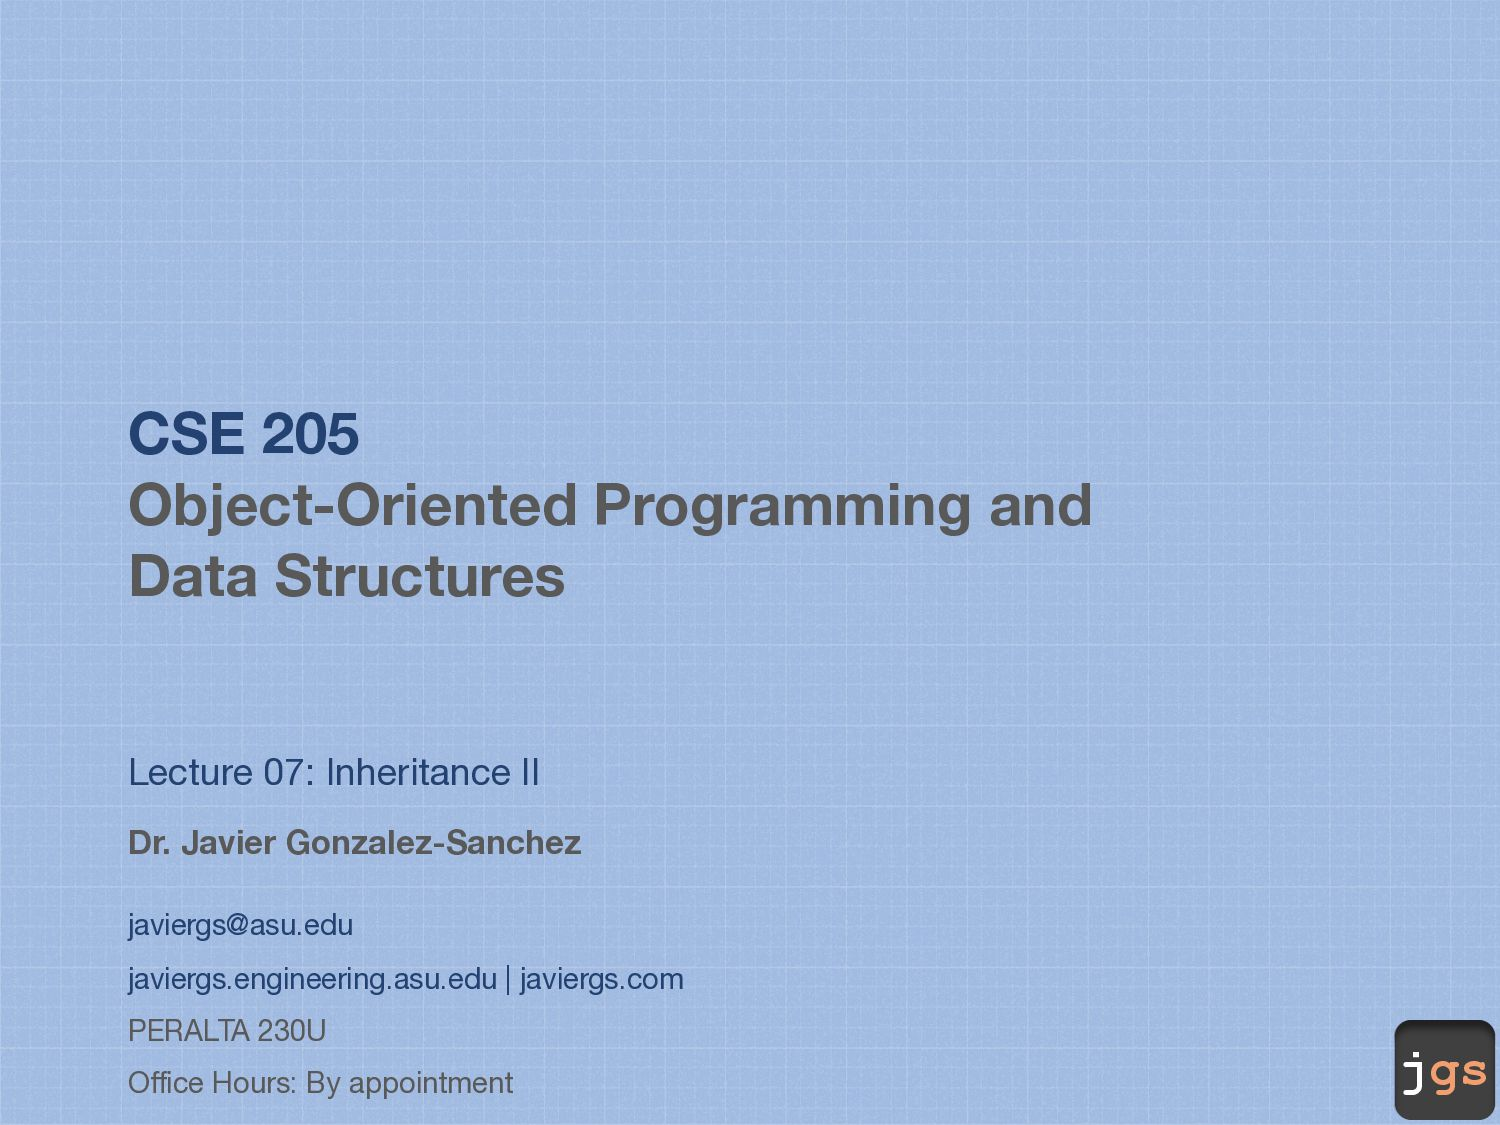 jgs CSE 205 Object-Oriented Programming and Dat...